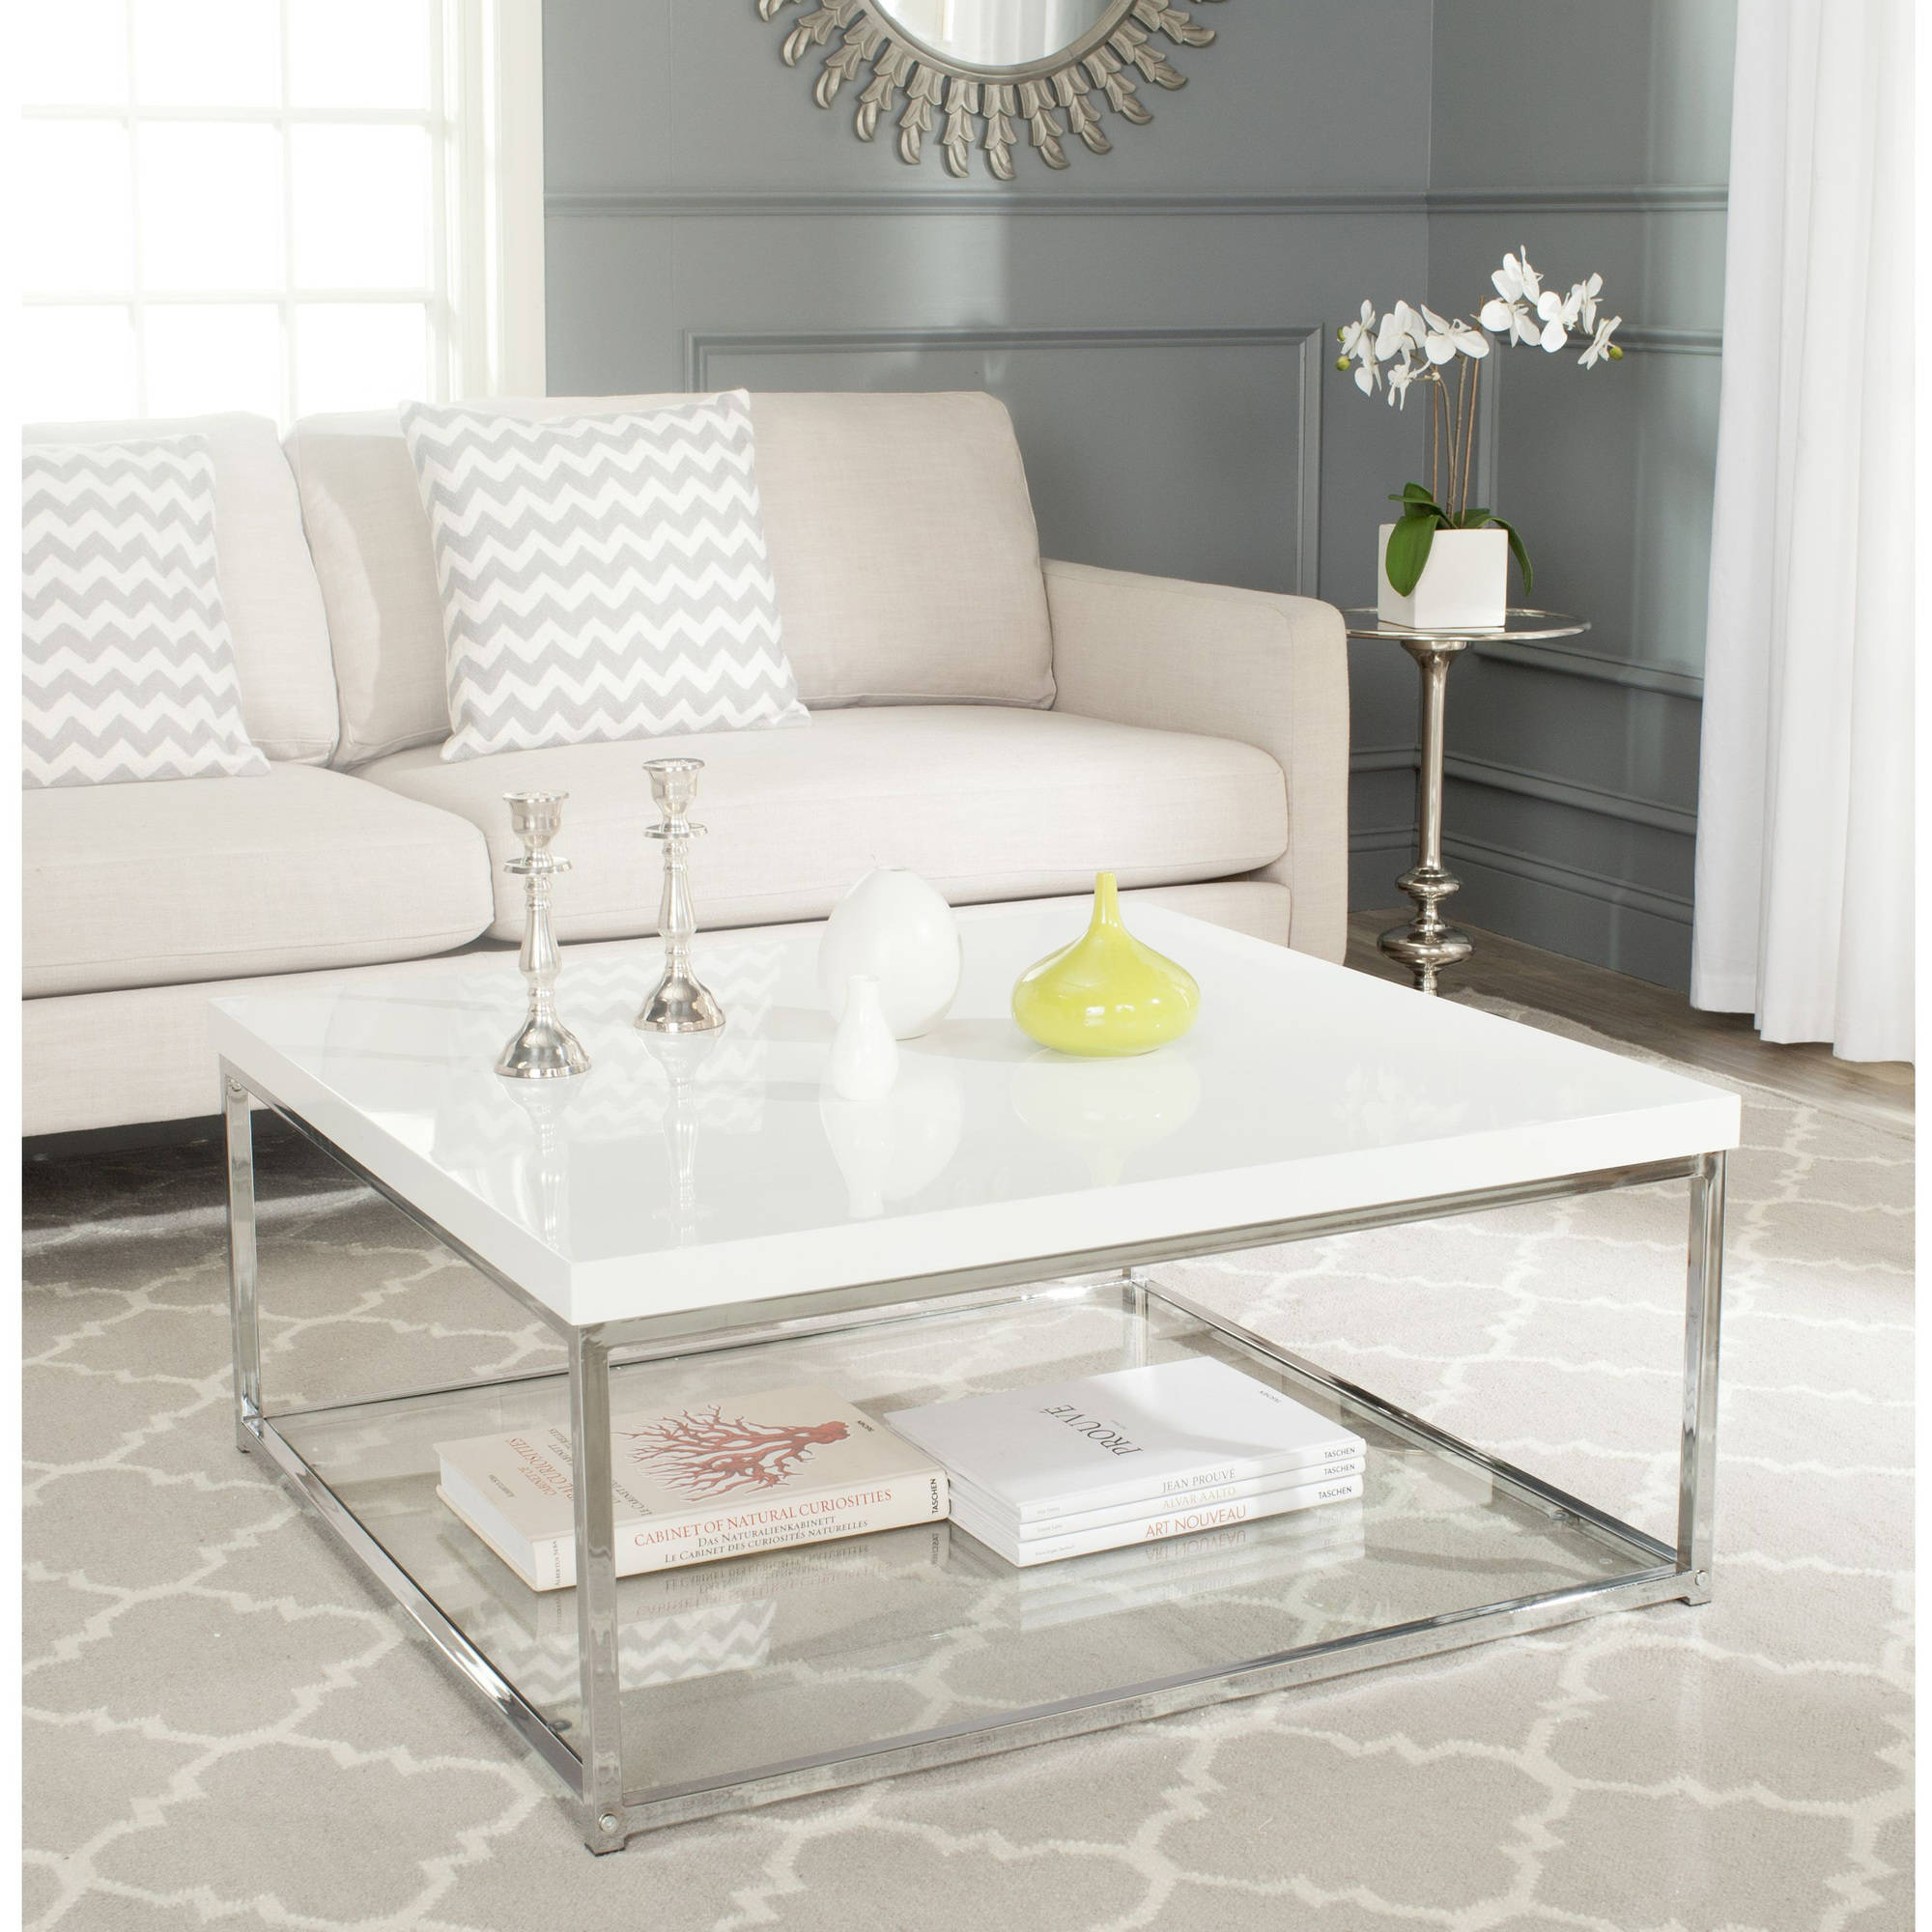 Safavieh Malone Coffee Table White and Chrome